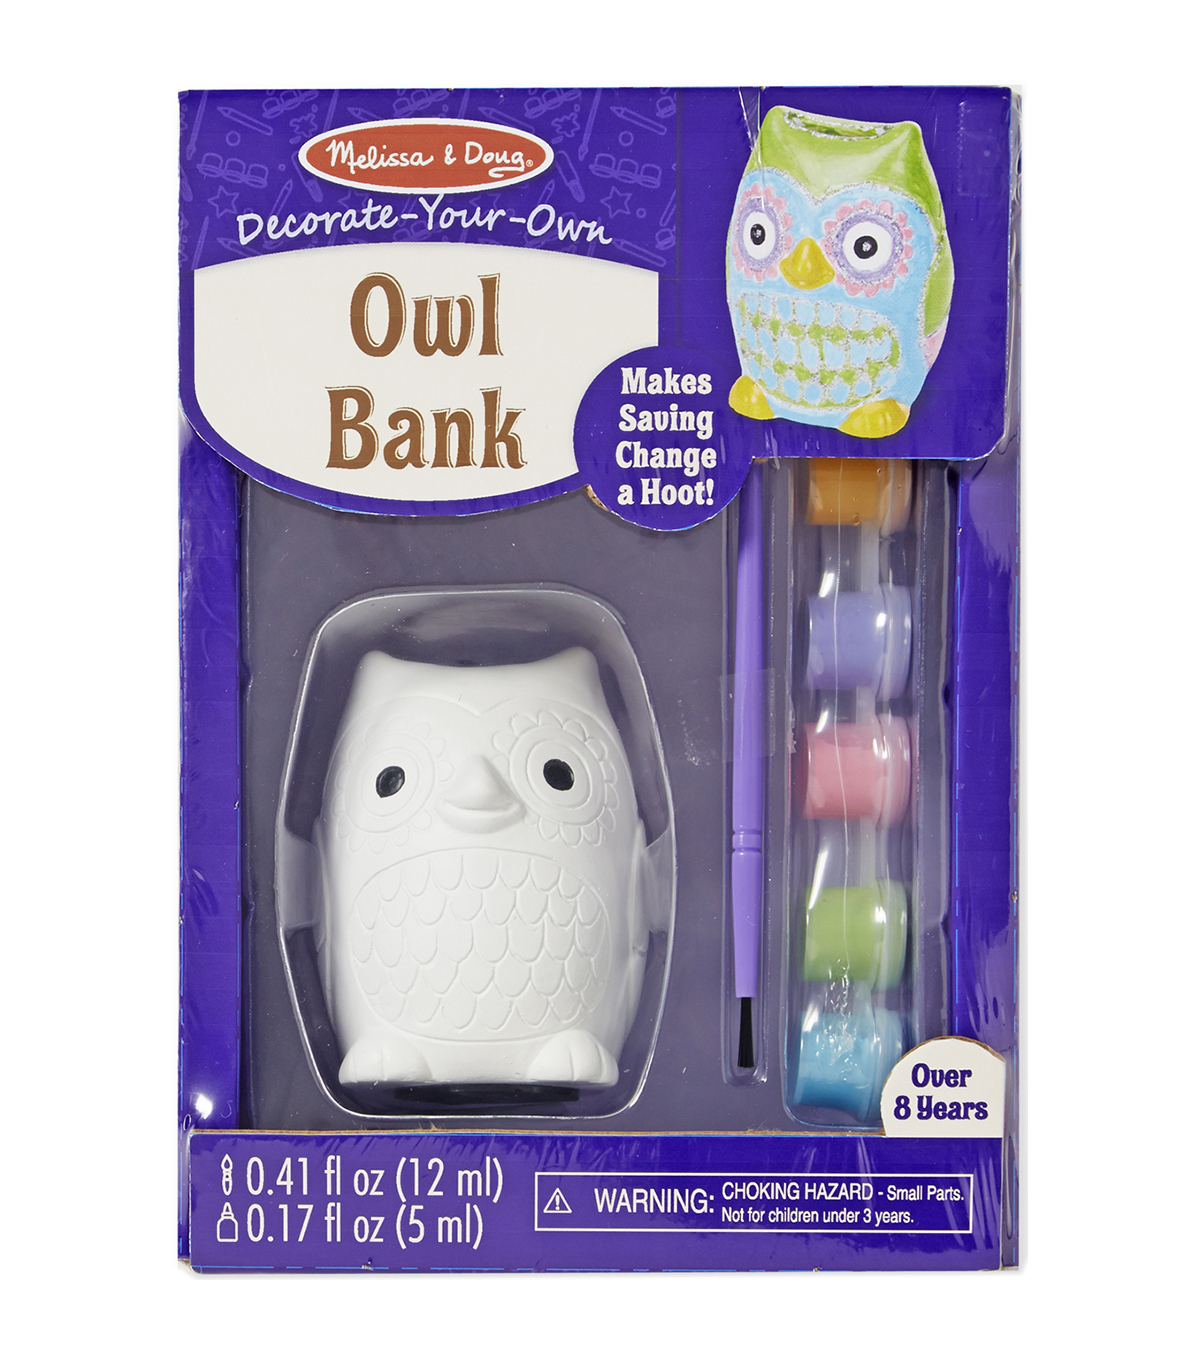 Melissa & Doug Decorate-Your-Own Bank Kit-Owl